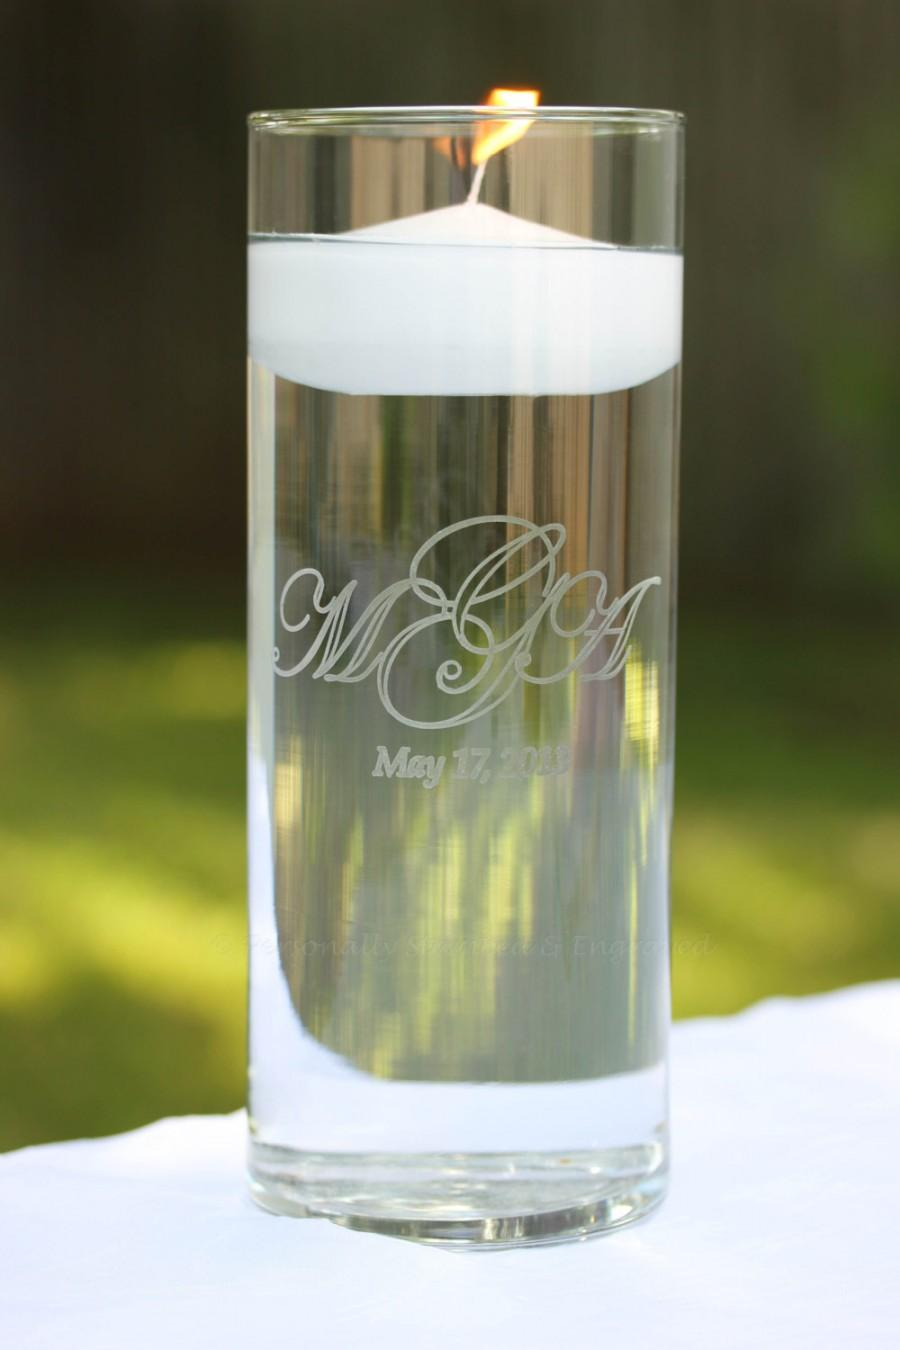 Hochzeit - Engraved Floating Unity Glass Vase, Floating Candle included in ivory or white or pink - Made to Order